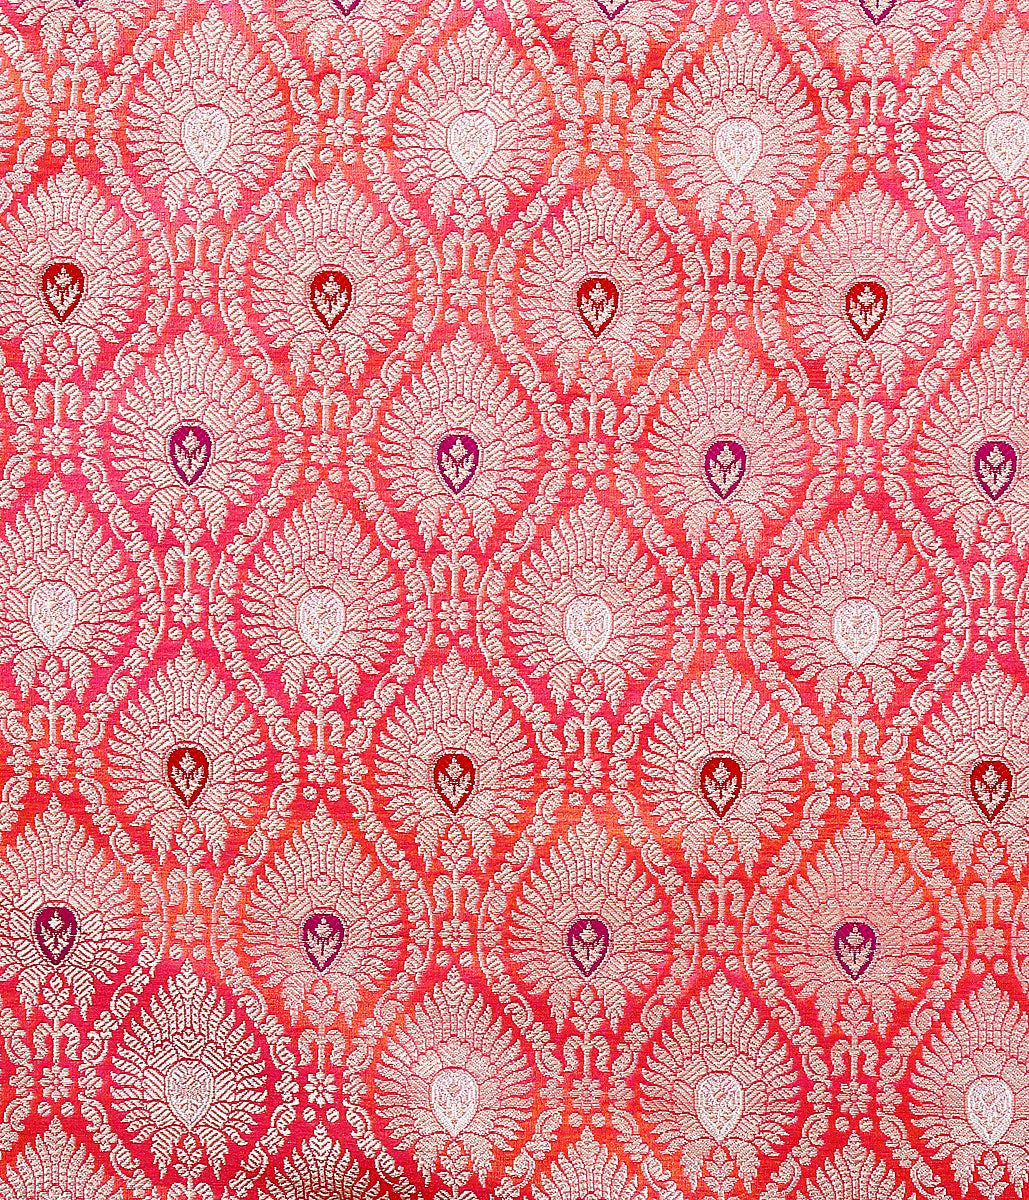 Handwoven Banarasi brocade fabric in pink and orange dual tone